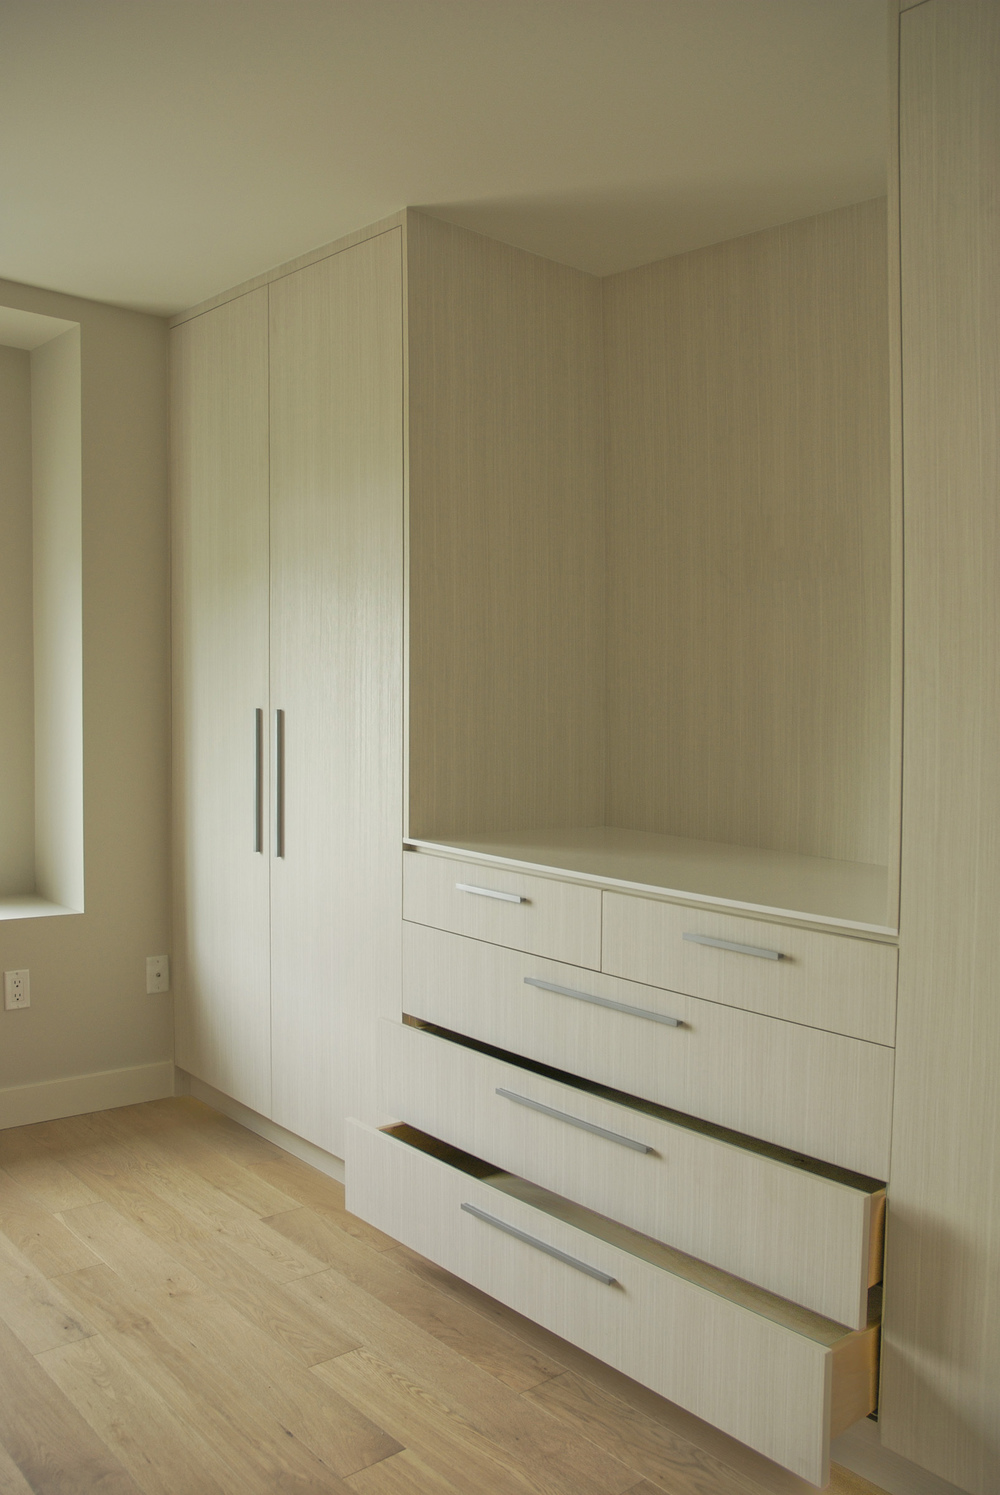 Duplex-bedroom-millwork2.jpg